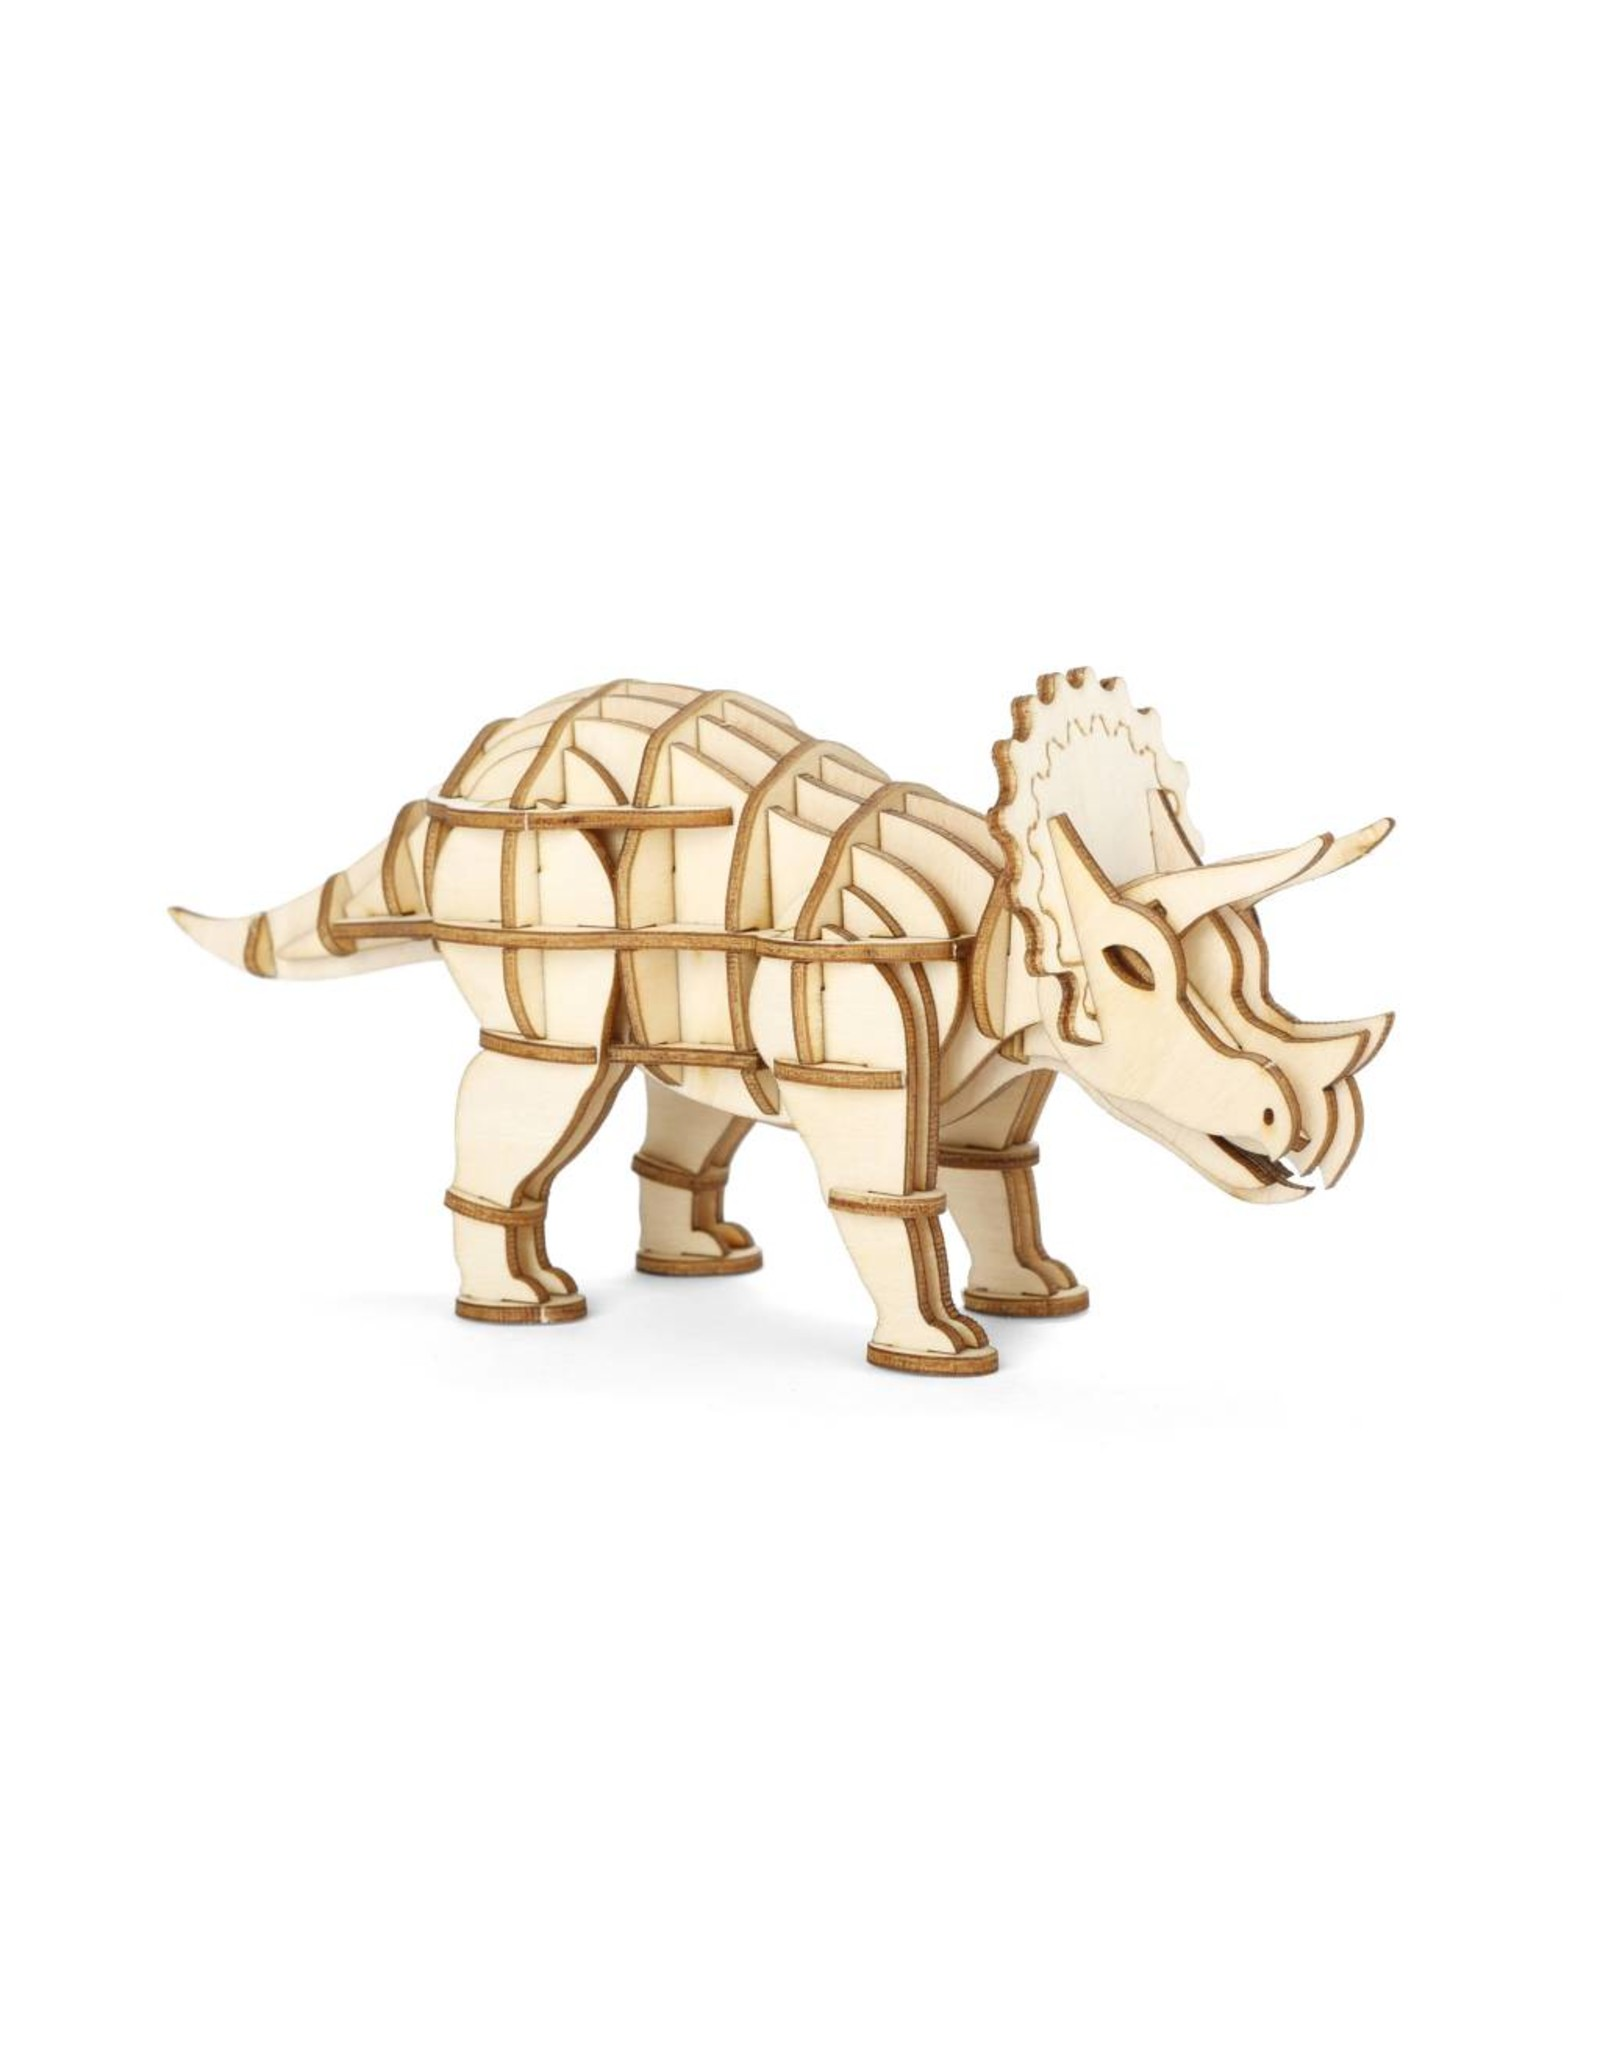 3D wooden puzzle in the shape of a triceratops